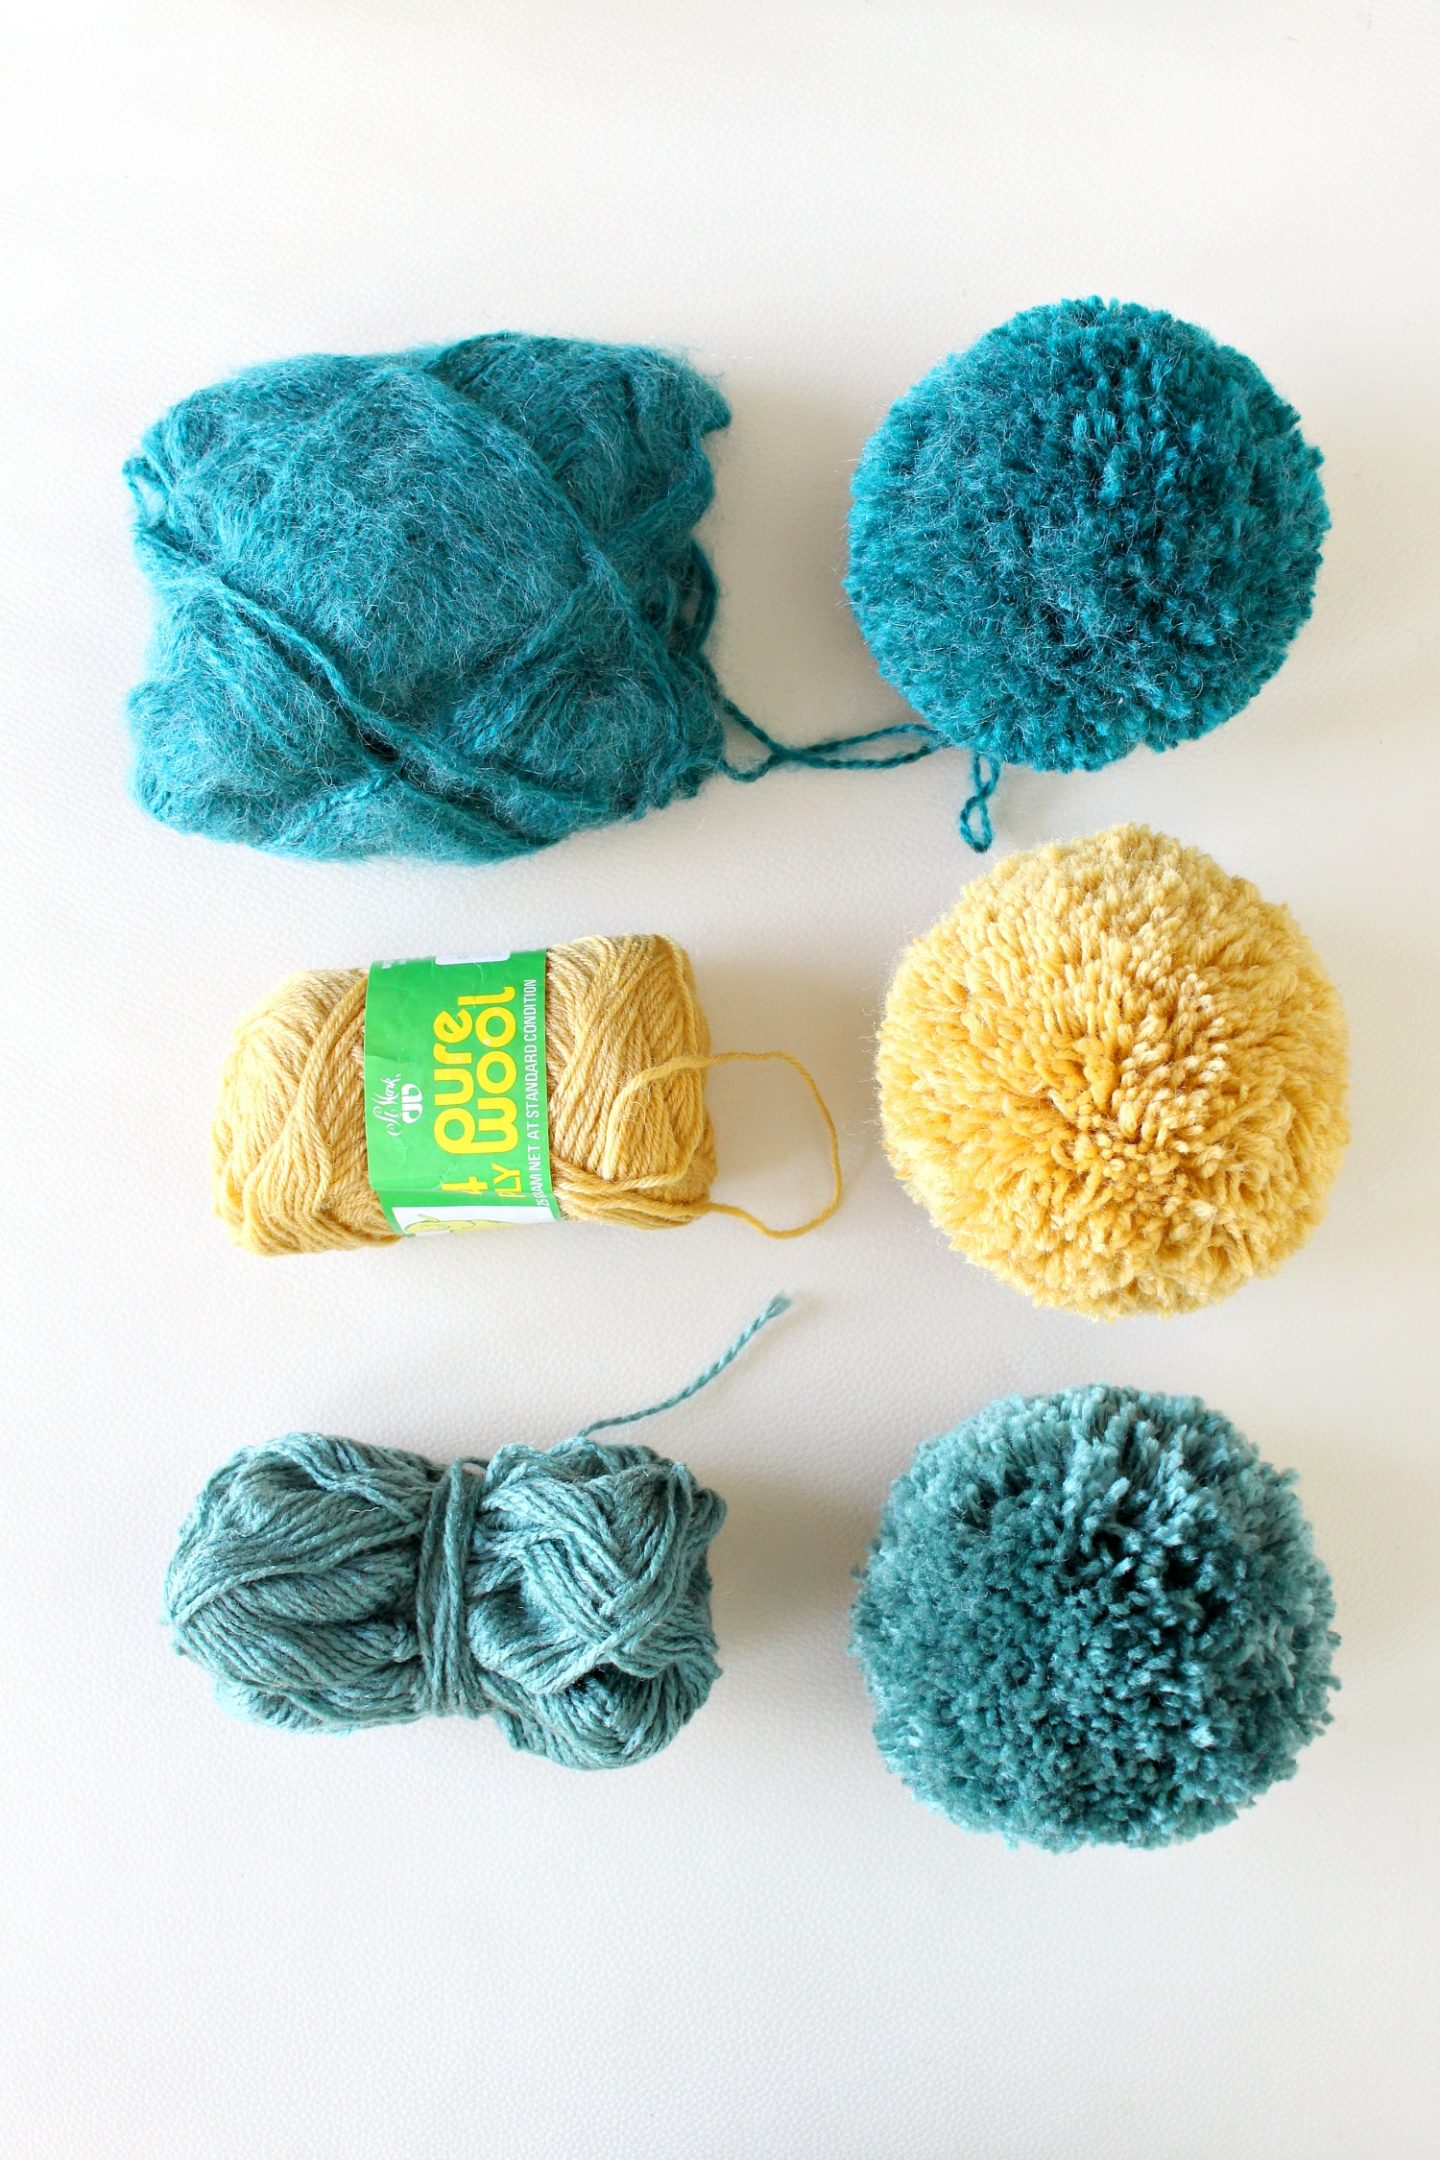 How to Make a Dense Pom Pom